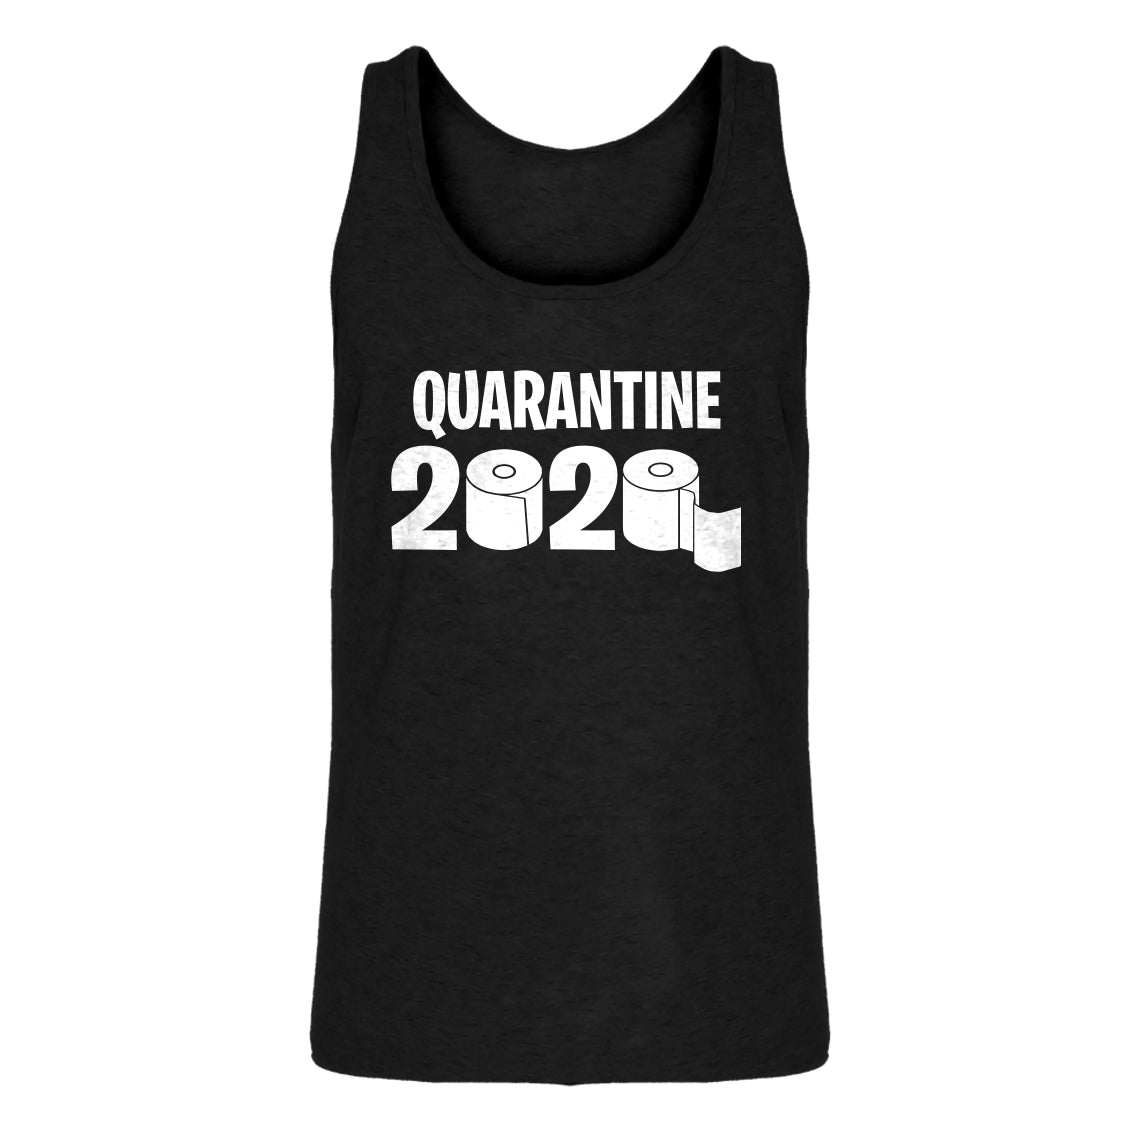 Mens 2020 Quarantine Jersey Tank Top